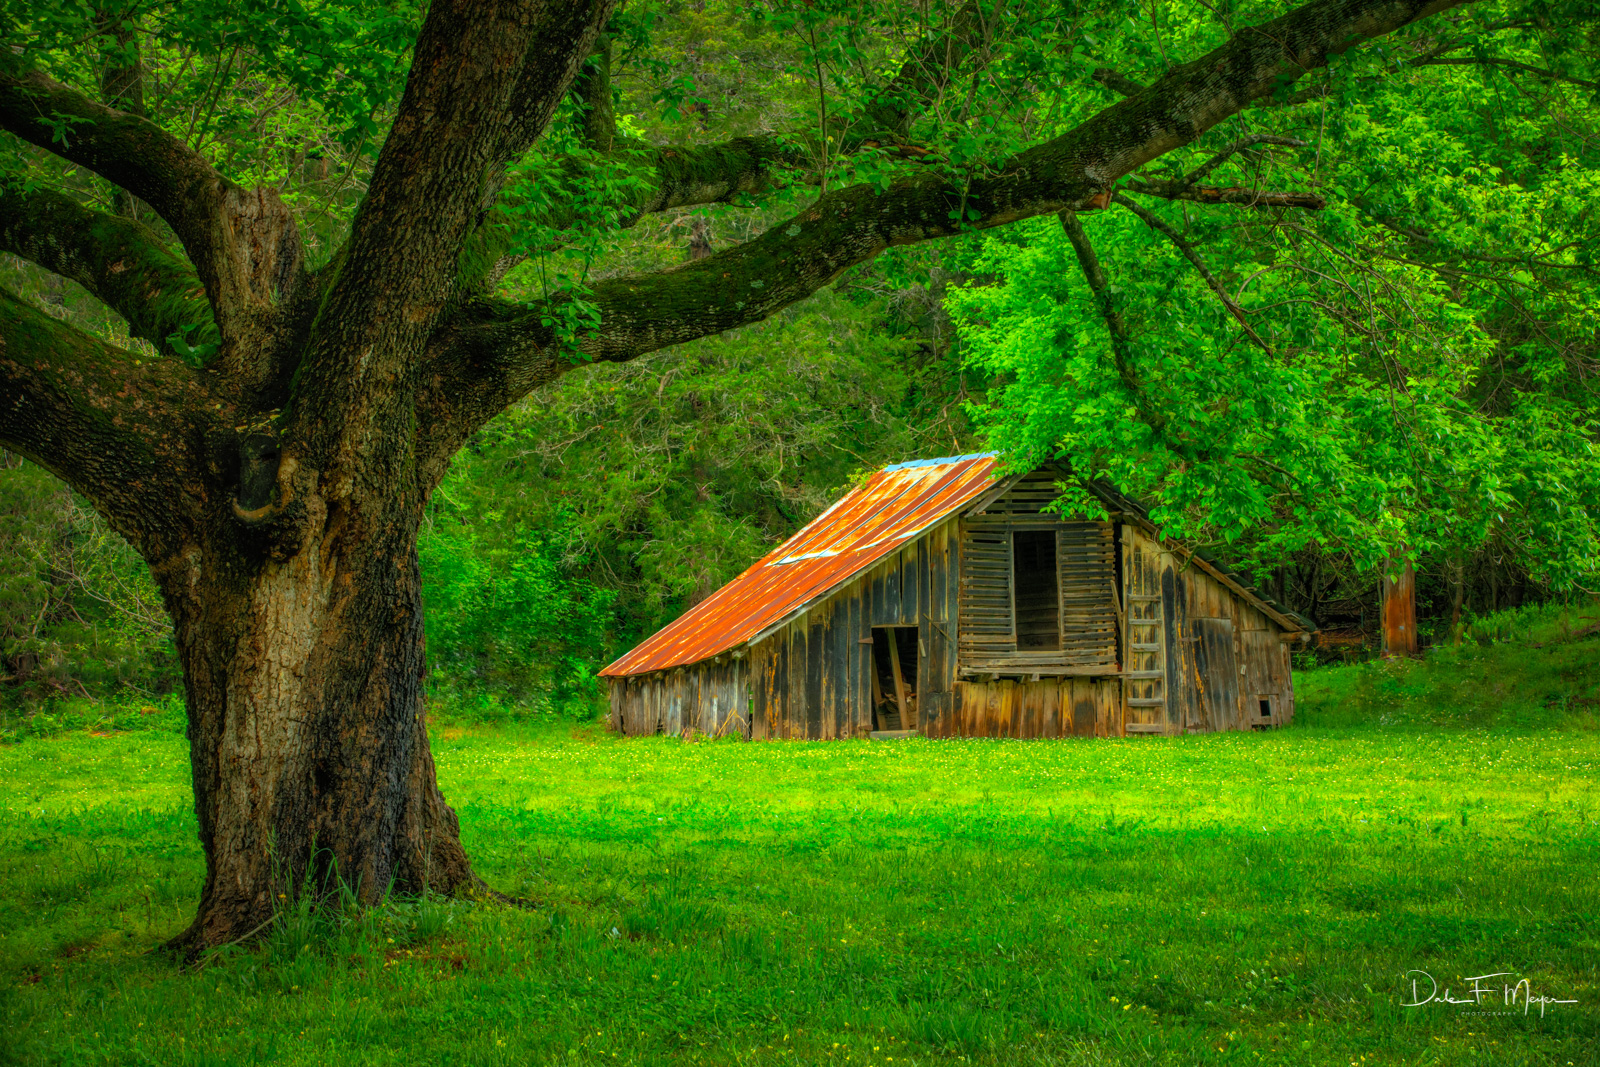 Barn in the Boxley Valley of North Arkansas. The owner of this property was gracious to allow me to photograph this old gem....